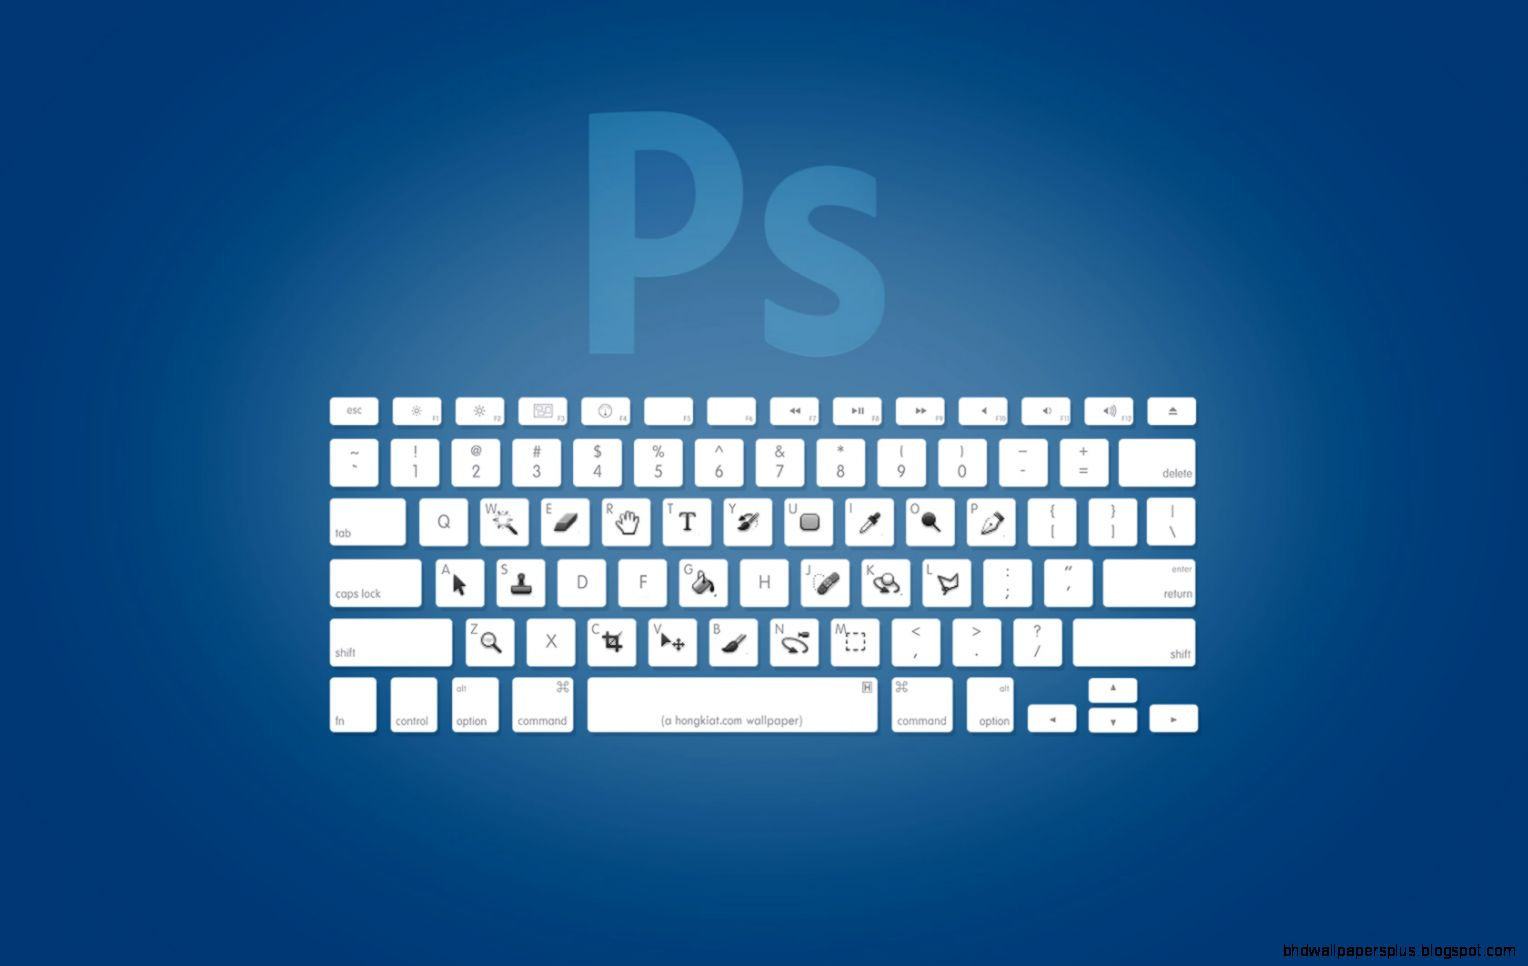 Photoshop CS6 Shortcut Keys